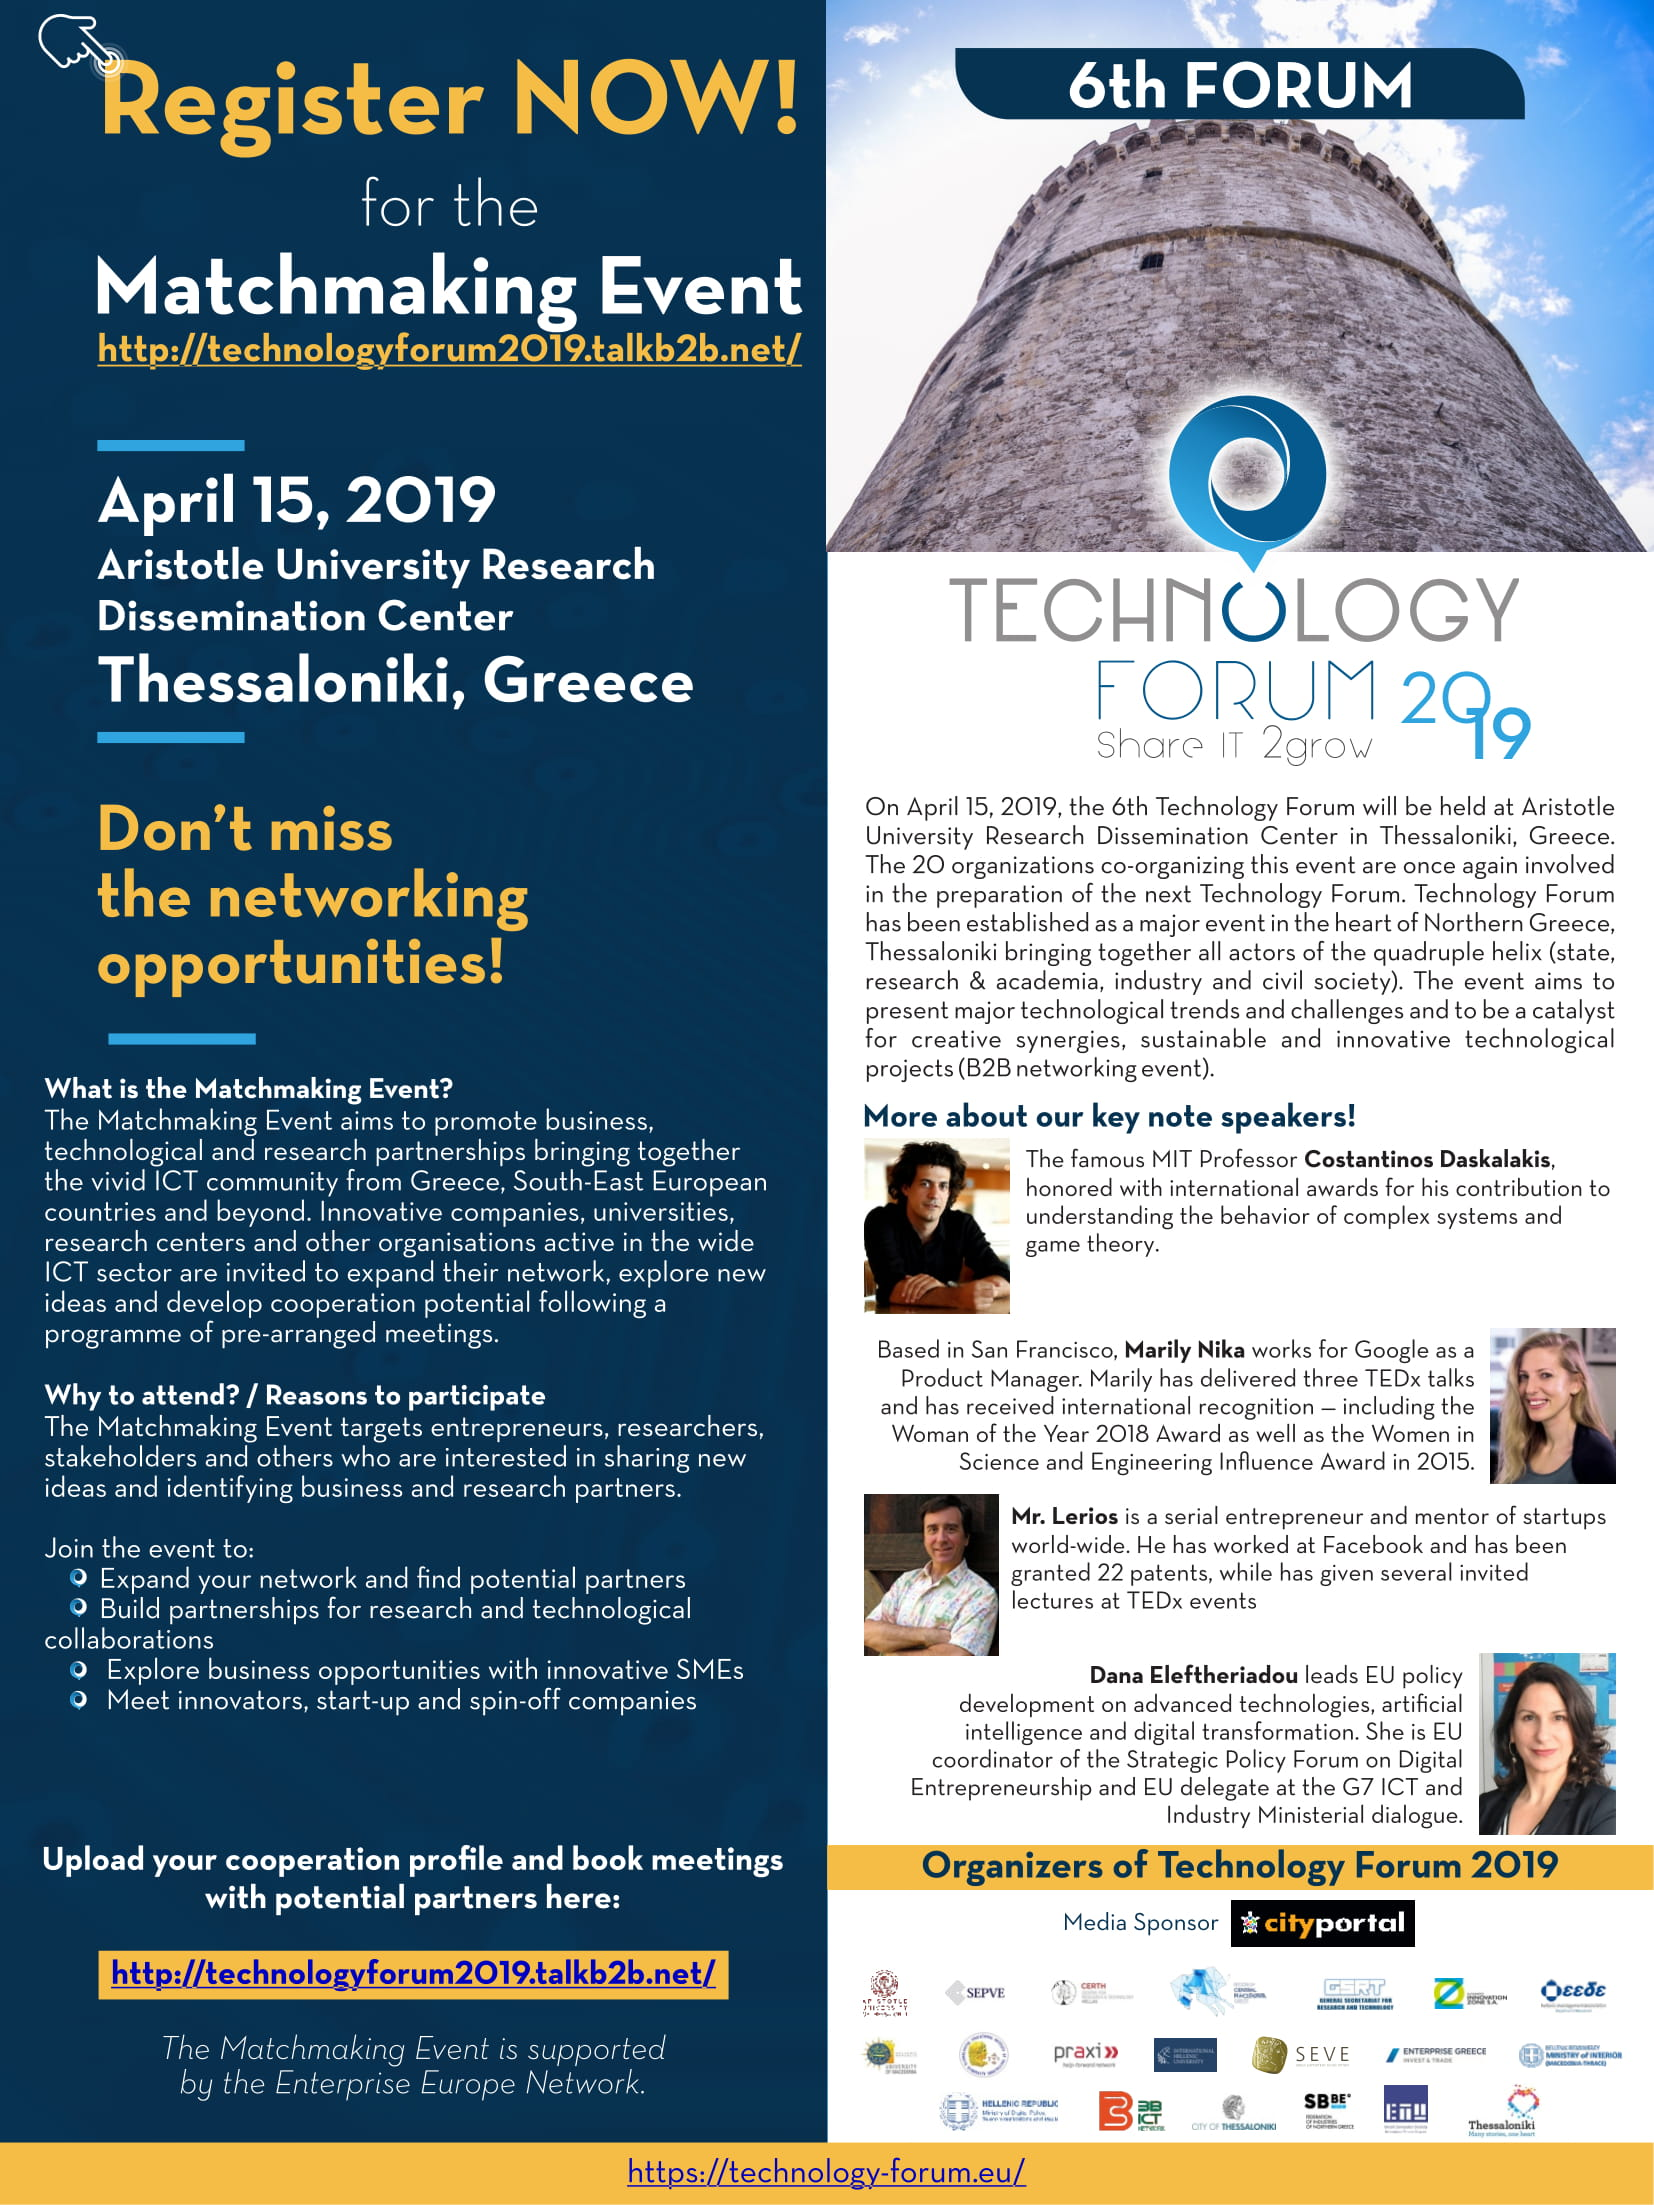 6th Technology Forum 2019 – The Matchmaking Event